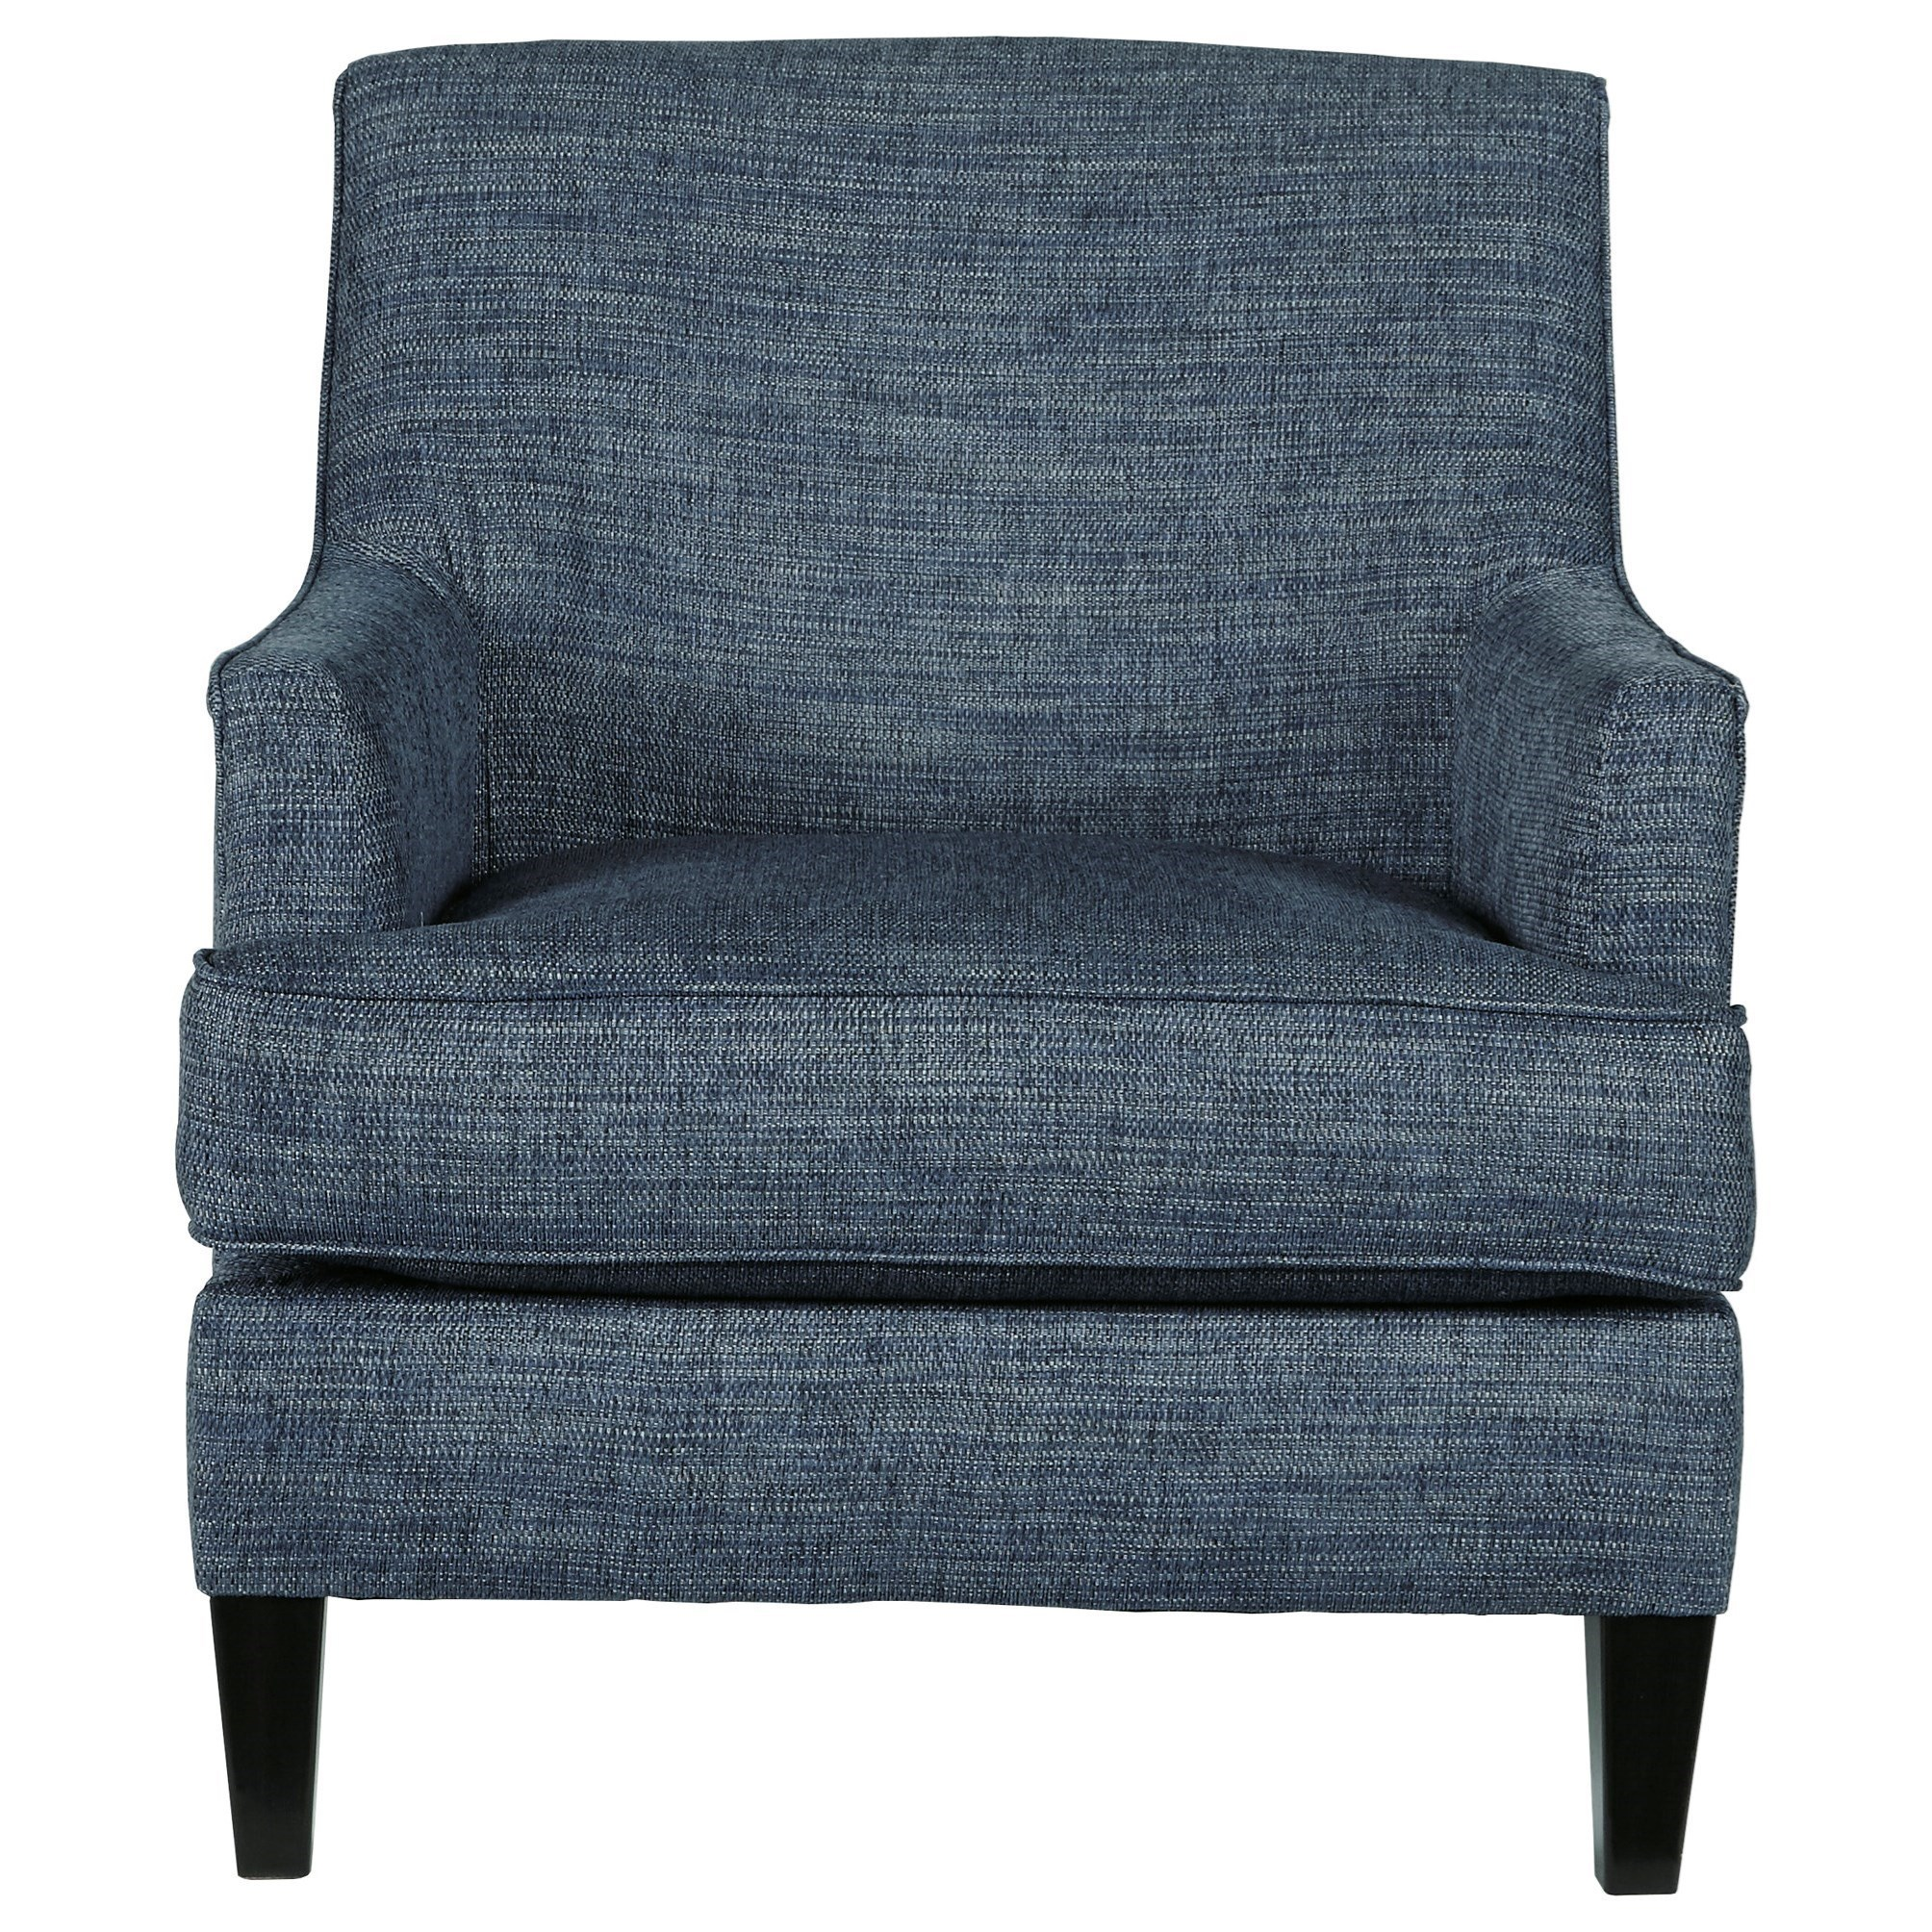 Accent Chair in Blue Fabric